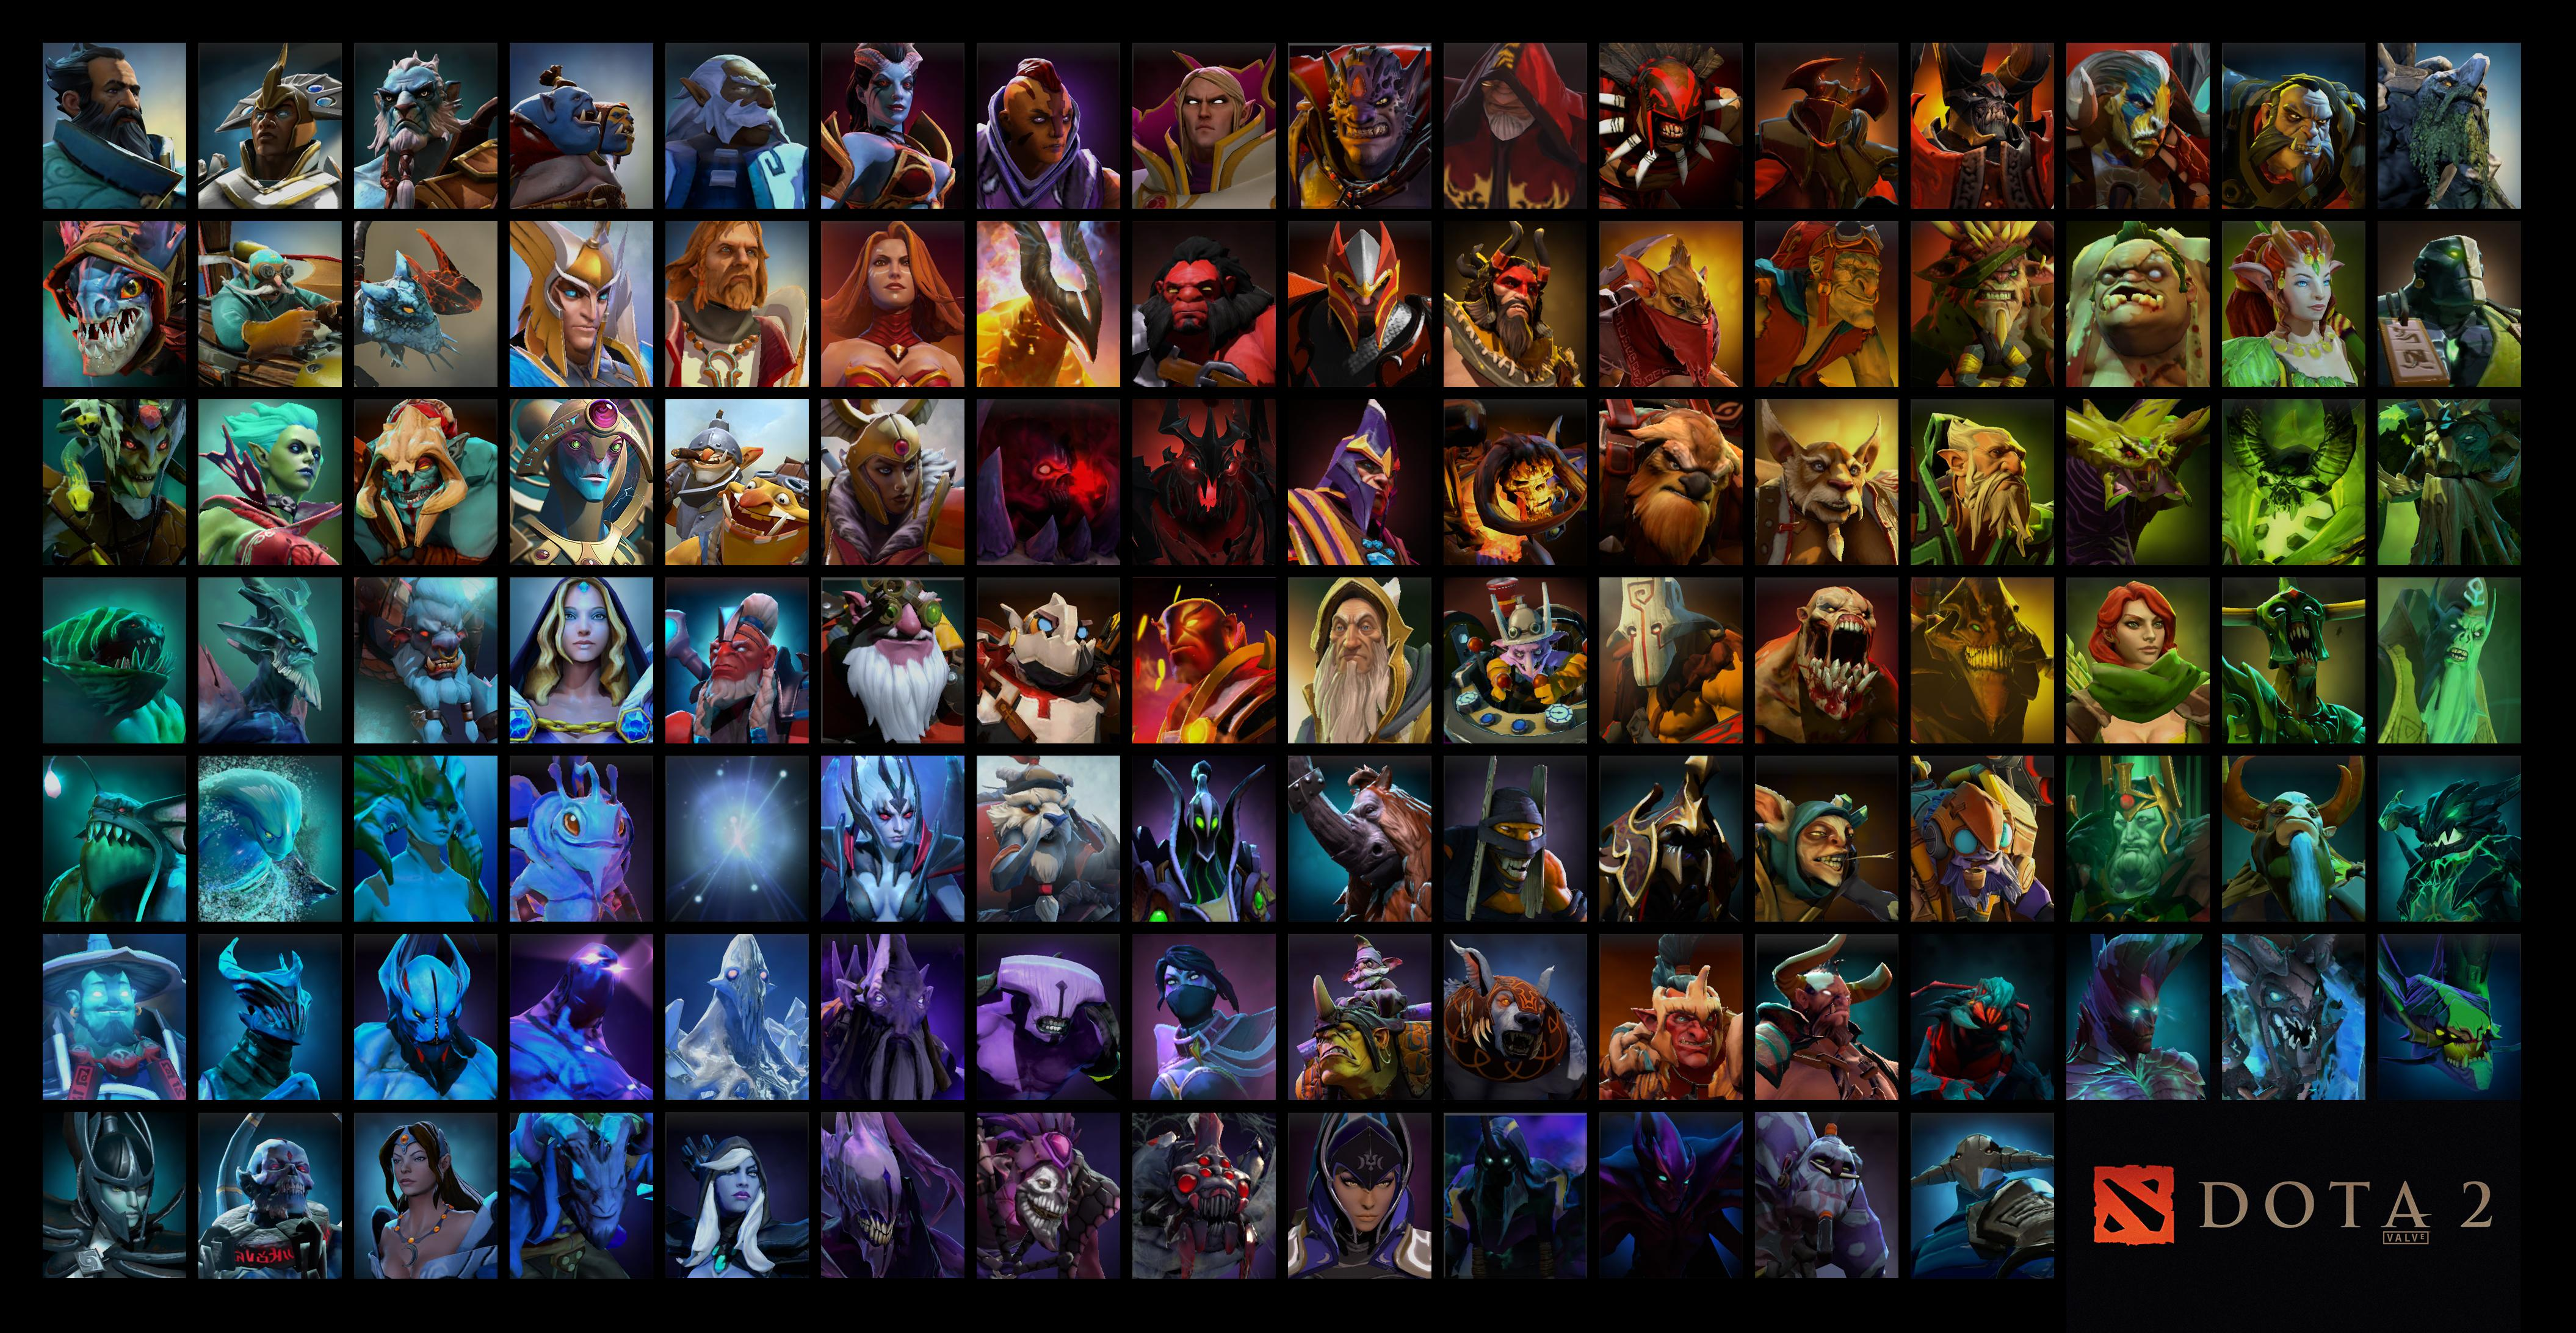 Dota 2: Heroes and Items Selection | NYC Data Science